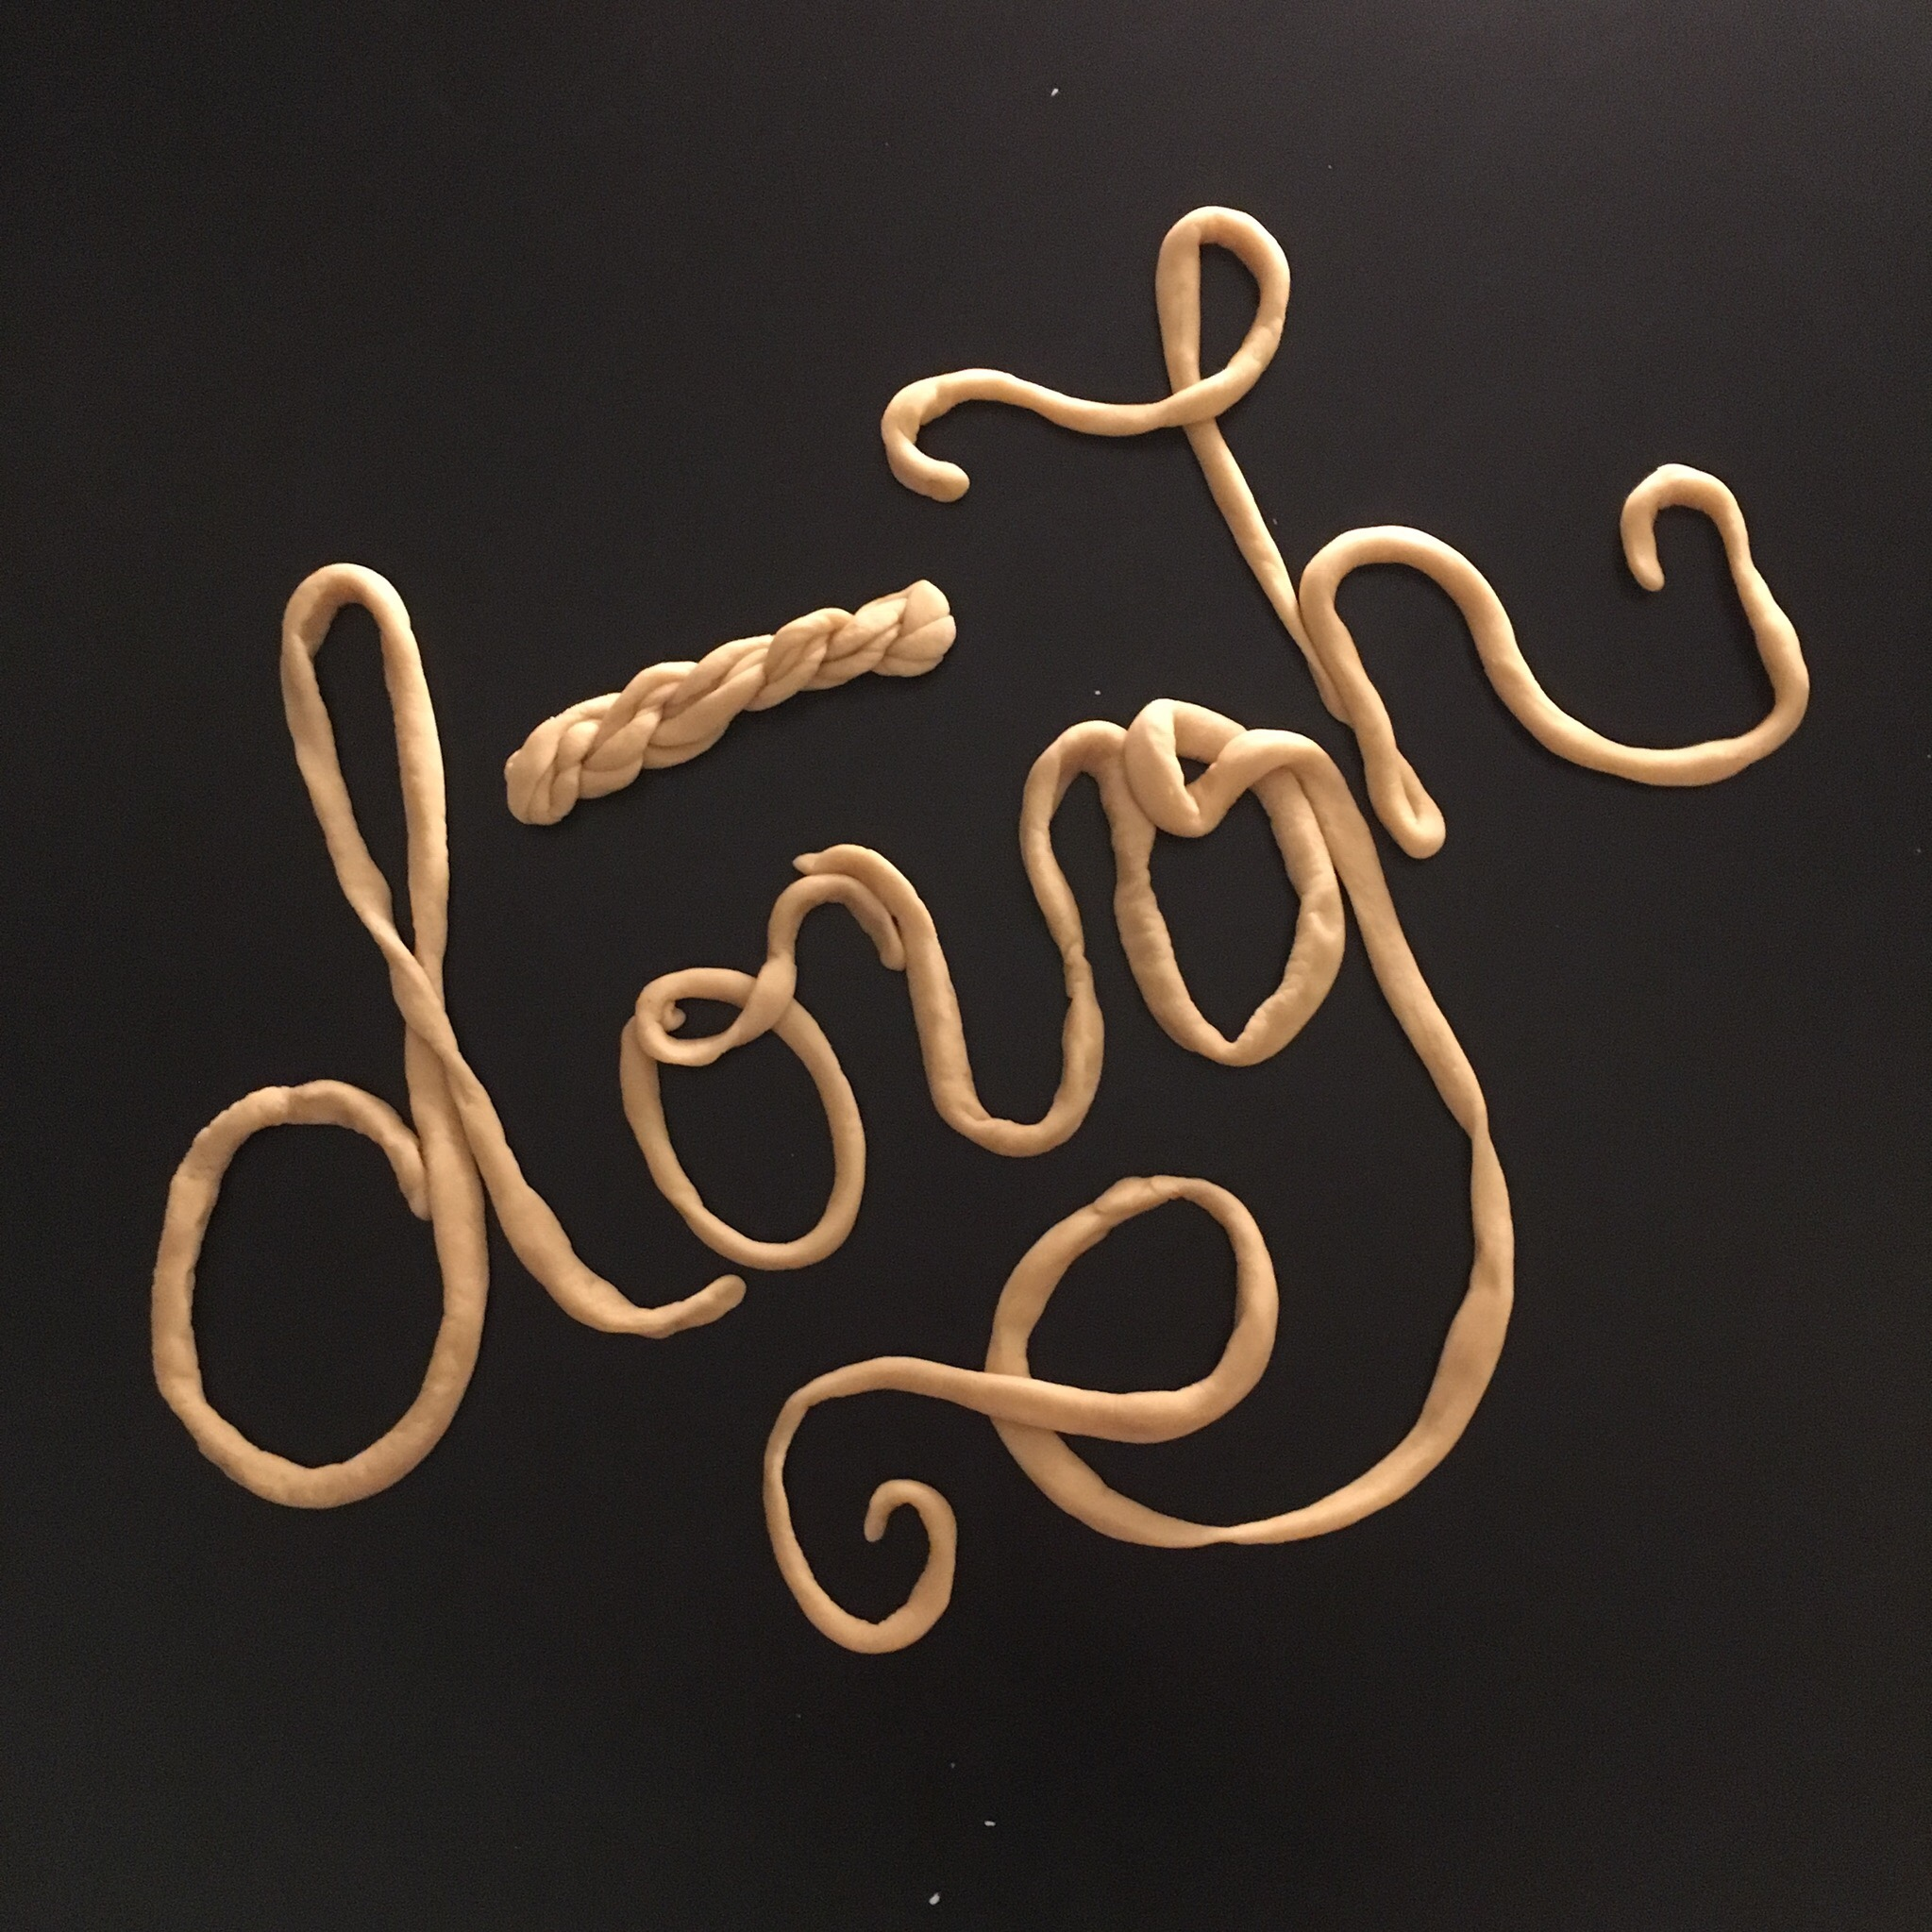 They told me not to play with food, but it was so much fun dough.